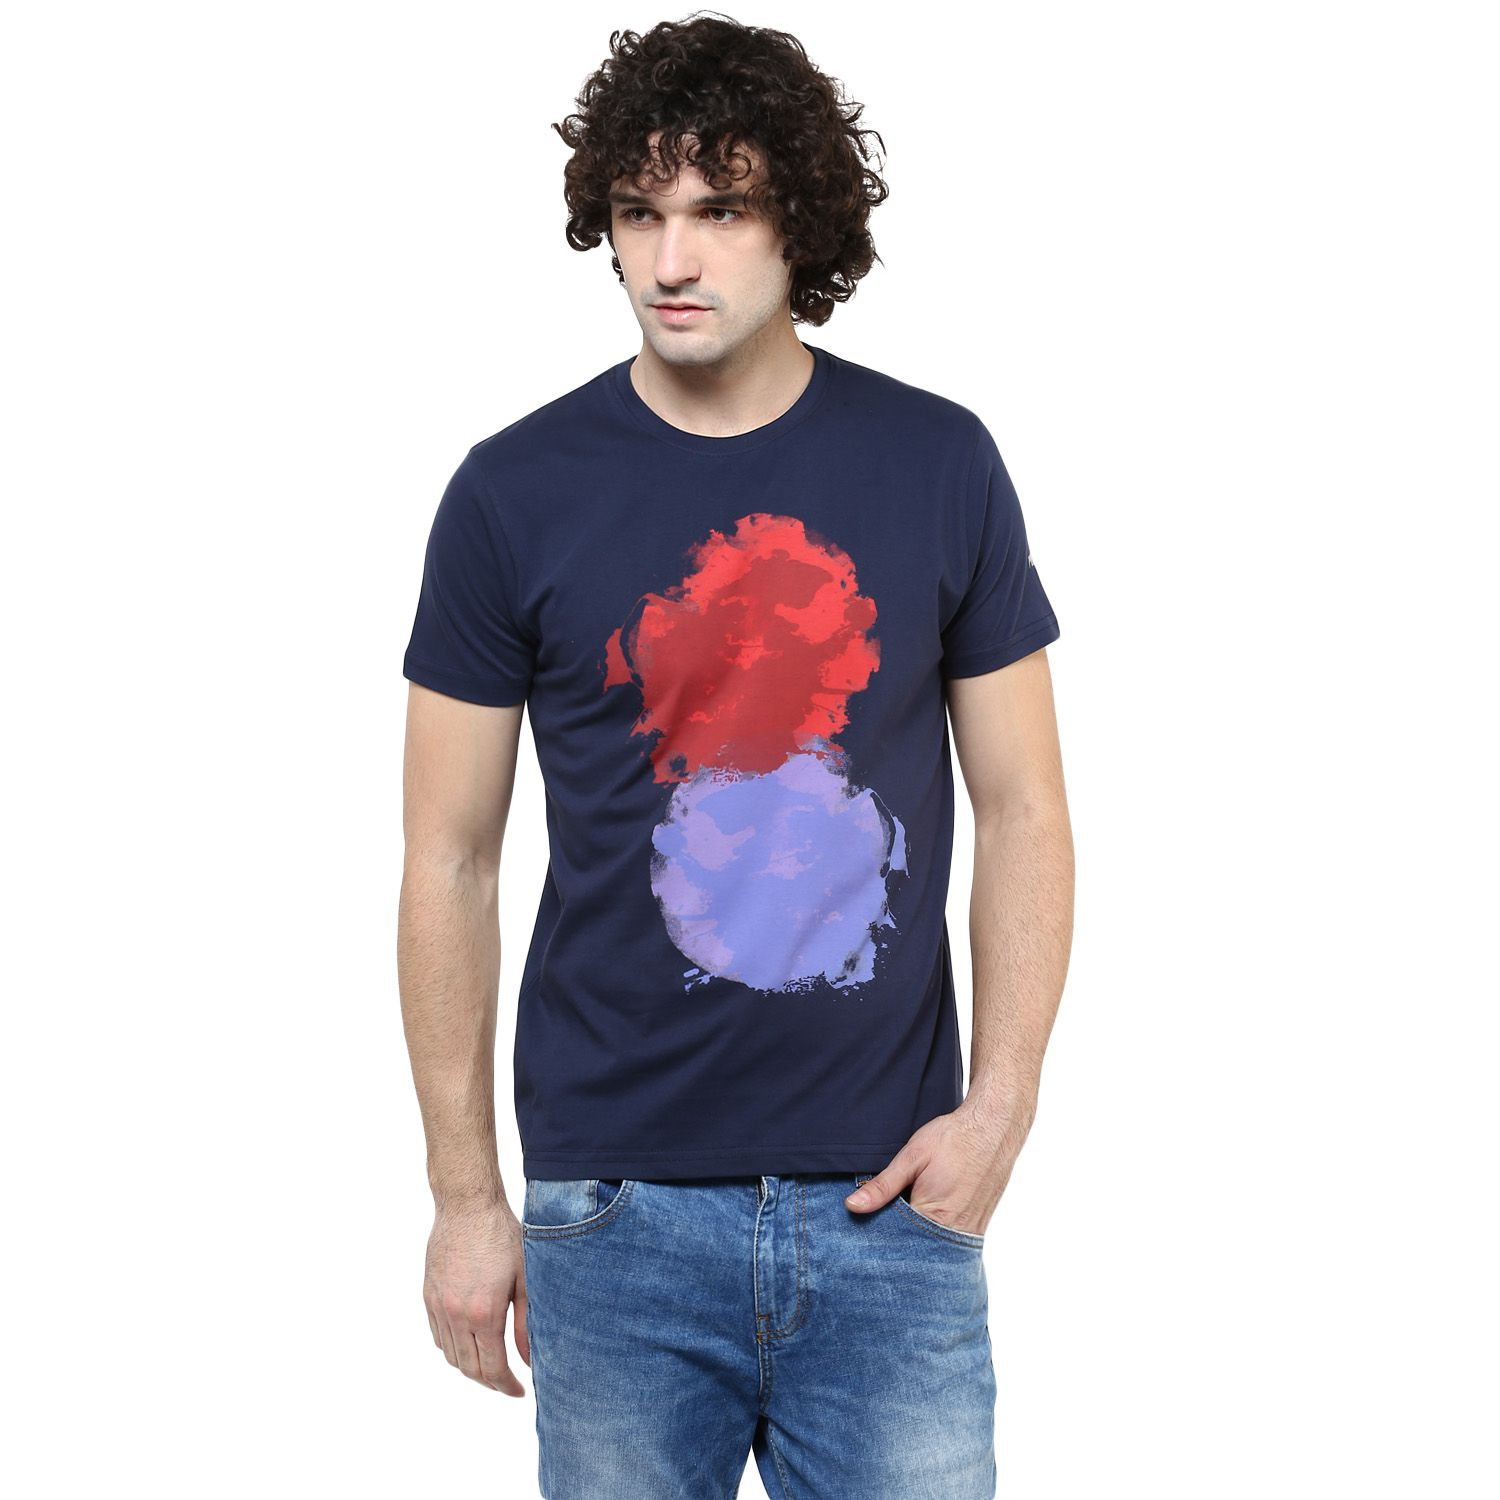 PRZM Navy Round T-Shirt Pack of 1